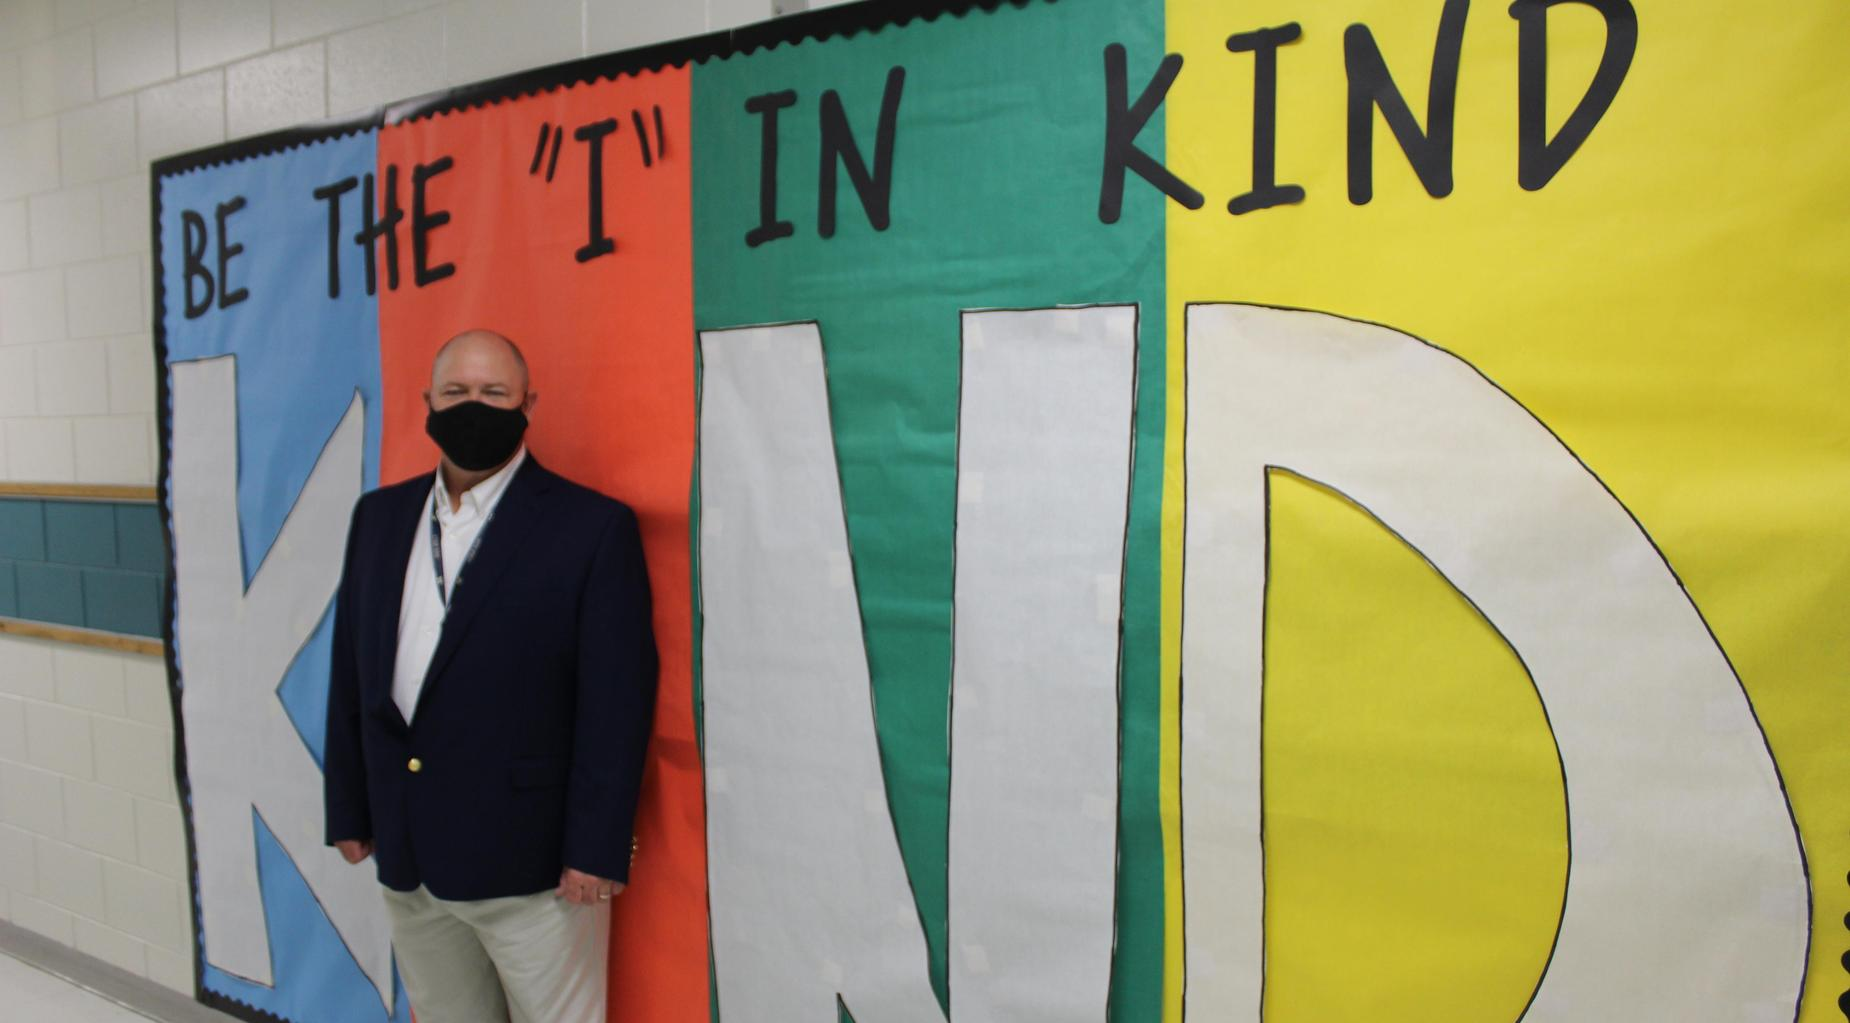 Dr. Scott Spence stands in front of a banner.